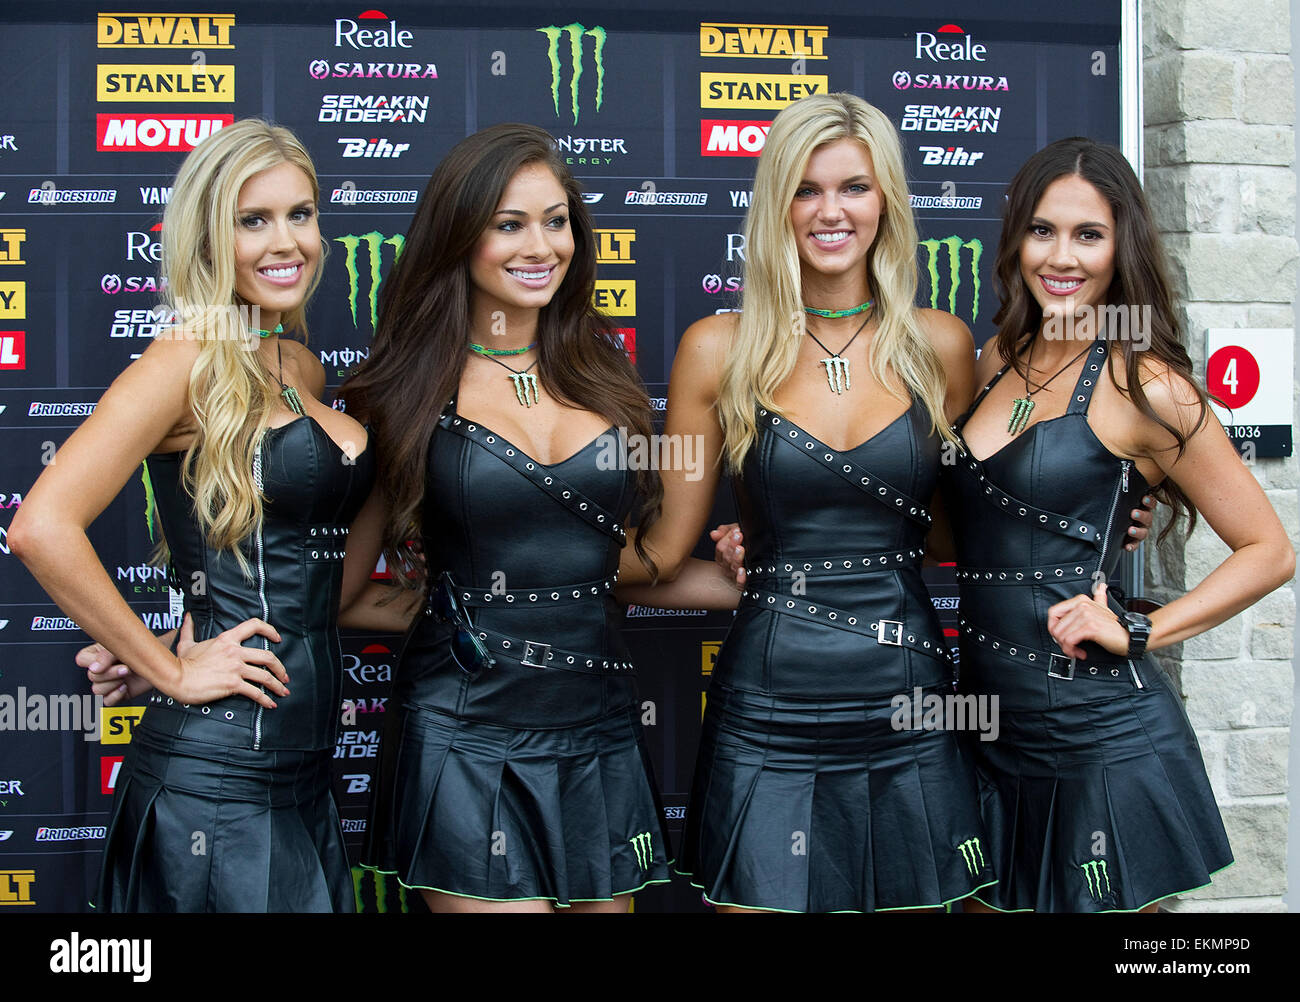 Red Bull Girls Stock Photos & Red Bull Girls Stock Images - Alamy